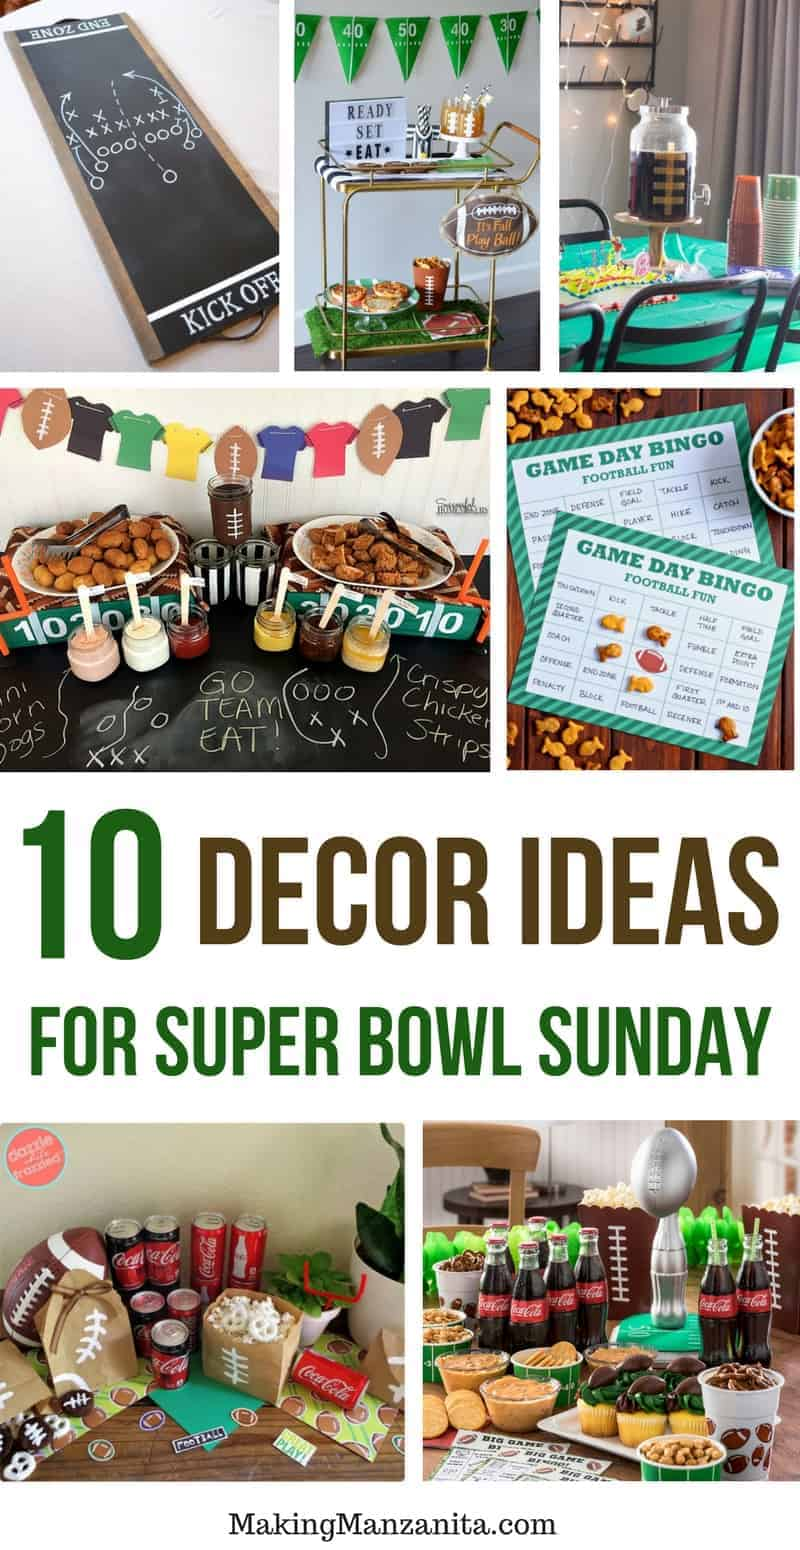 10 Decor Ideas for Super Bowl Sunday | 10 Simple Tutorials | How to make DIY Easy Super Bowl Decorations | Creative Printable Games (like Bingo Cards) for Football Party | Football Themed Party Projects like Tablescape | Football Serving Tray | Football Snack Bags | Decorated Bar Cart | DIY Trophy for Winner